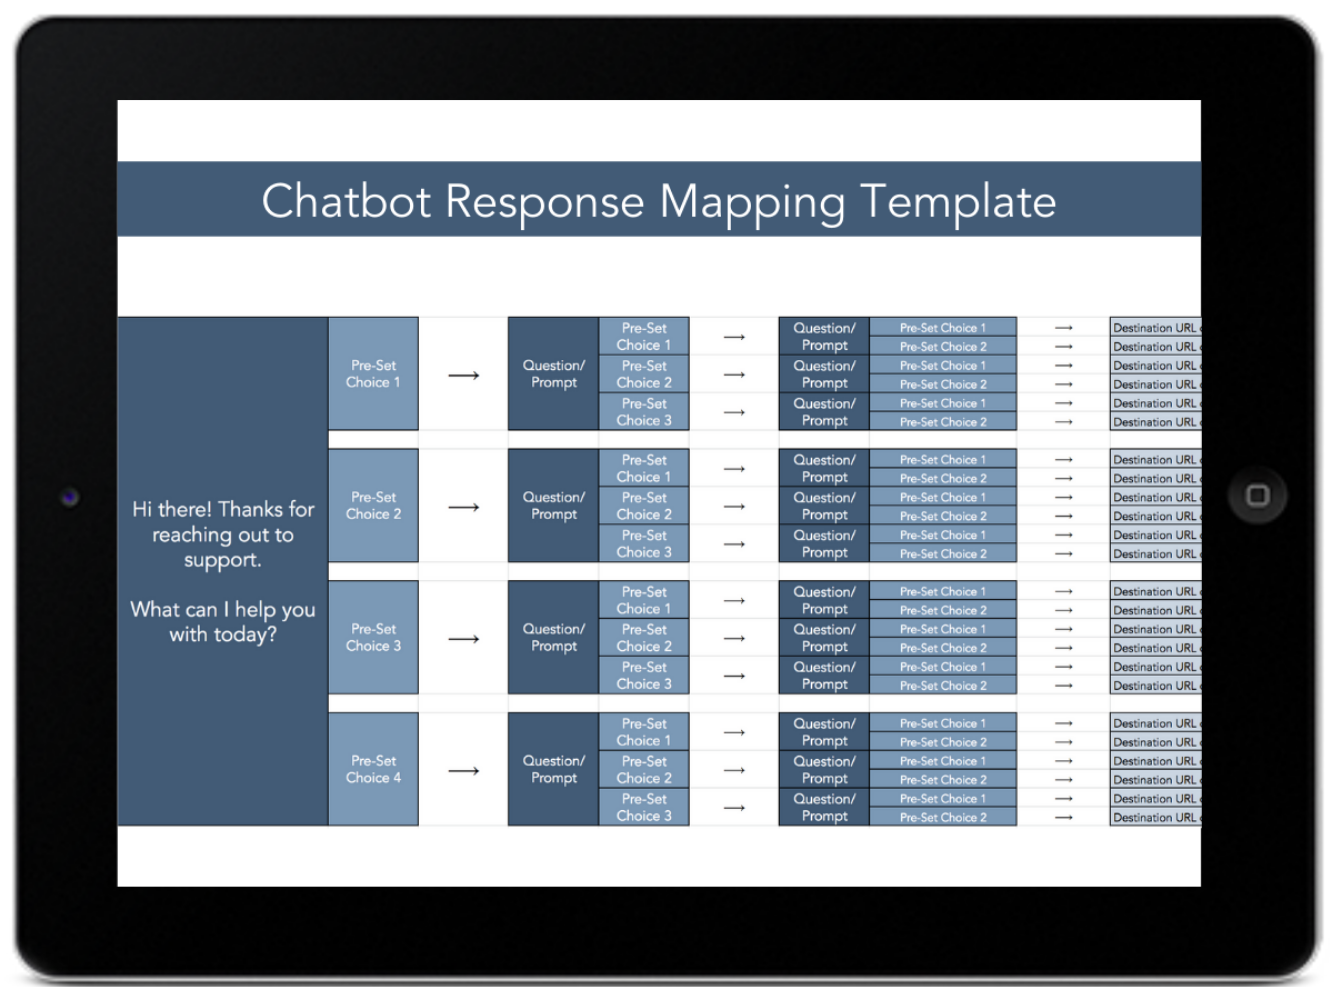 chatbot response mapping template